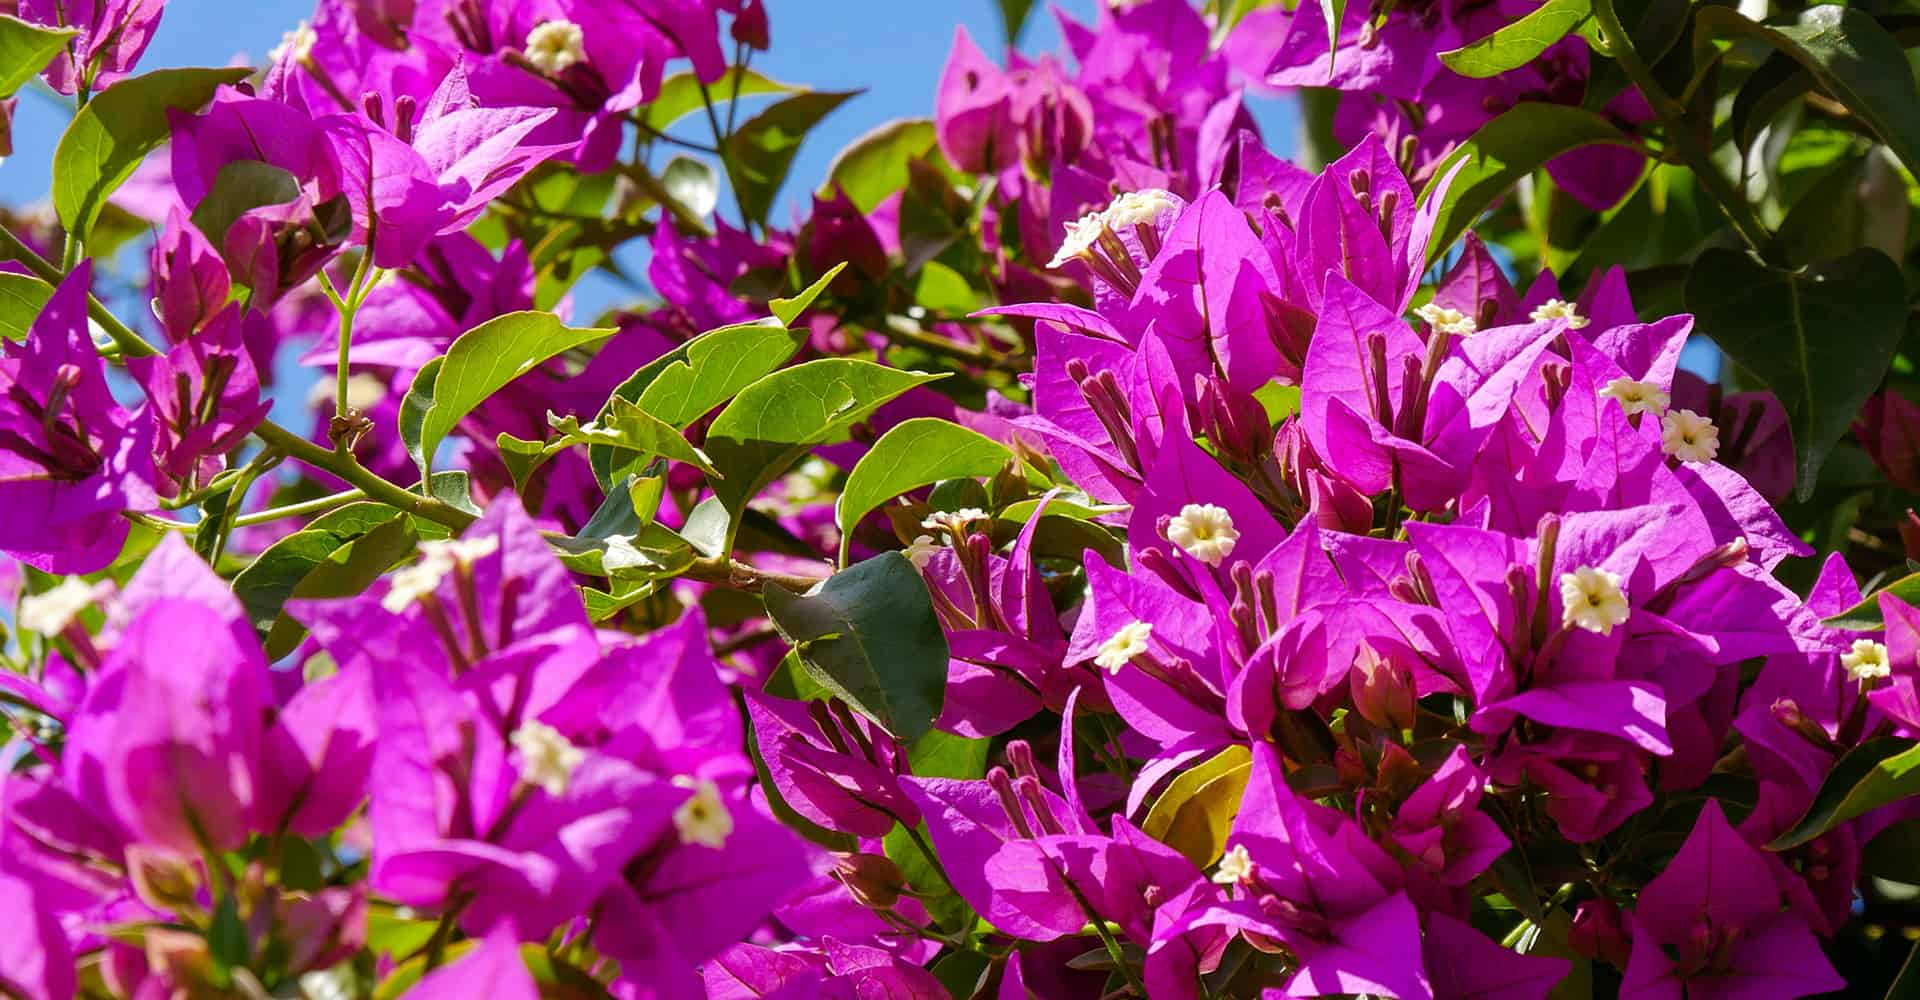 Clematis Pflege Bougainvillea Care Guide: How To Grow Bougainvillea | Diy